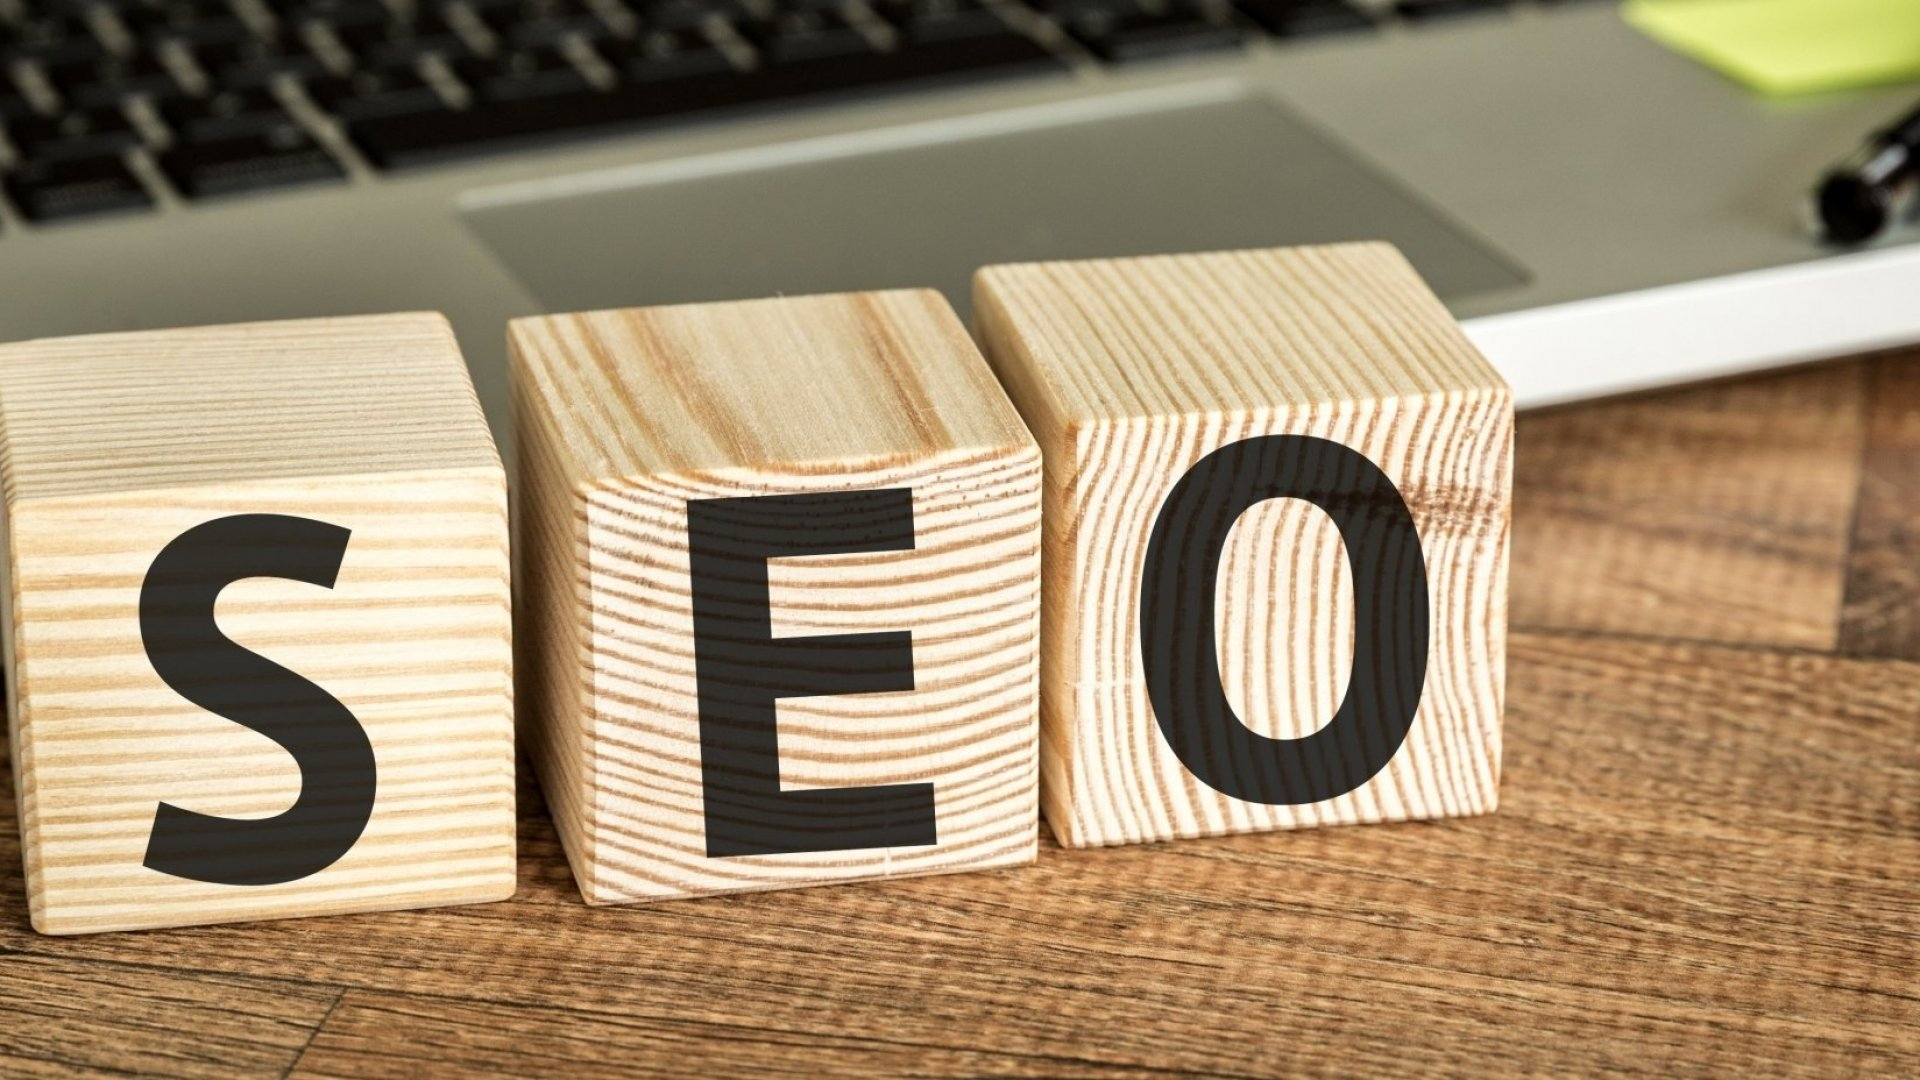 9 SEO Experts To Follow In 2018 | Inc.com